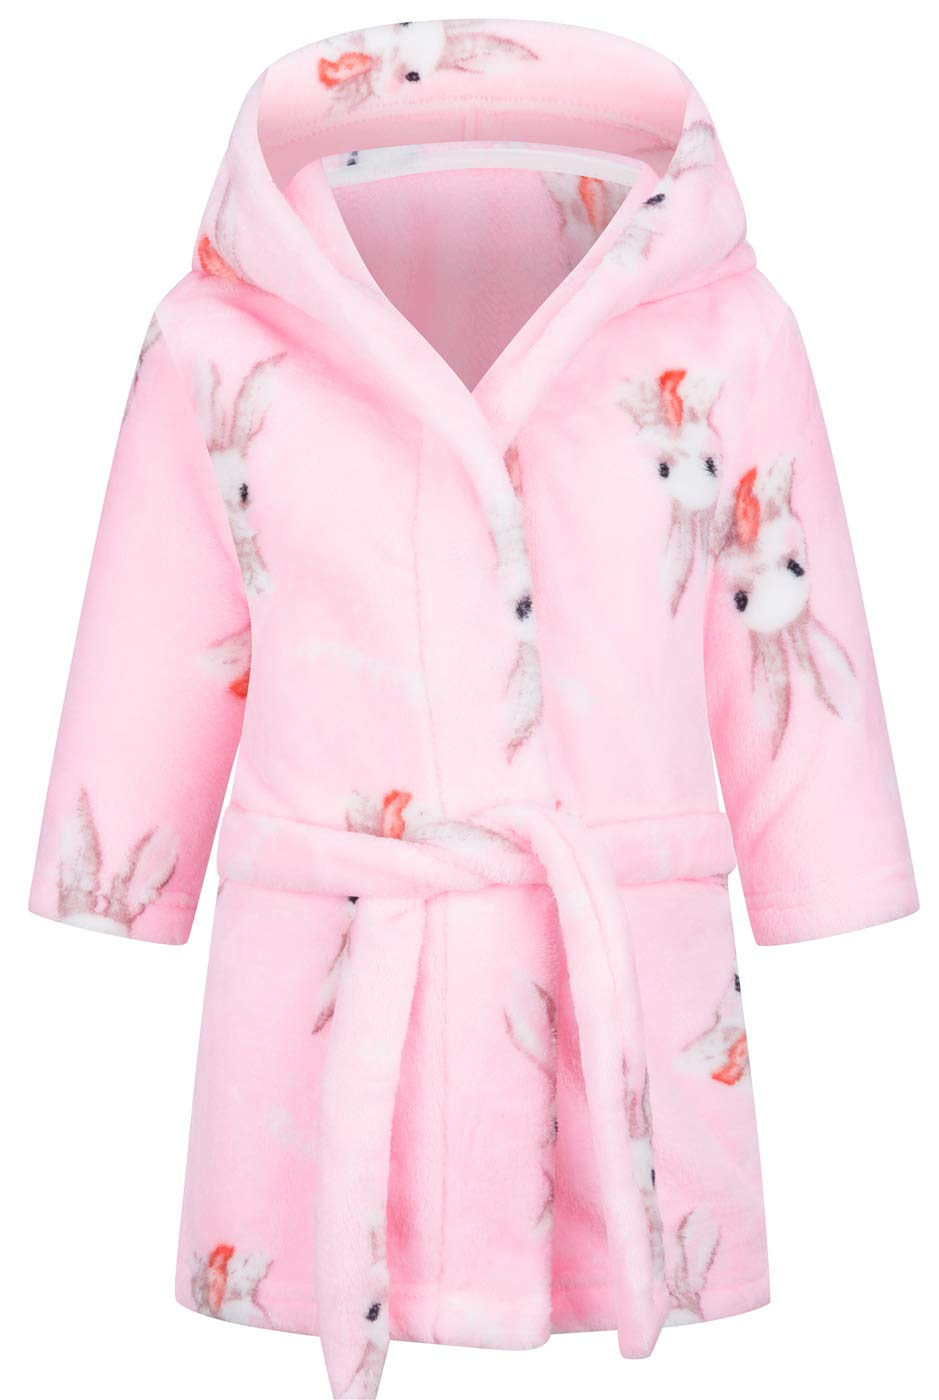 Image of Adorable Pink Hooded Bunny Rabbit Bath Robe for Girls and Toddlers